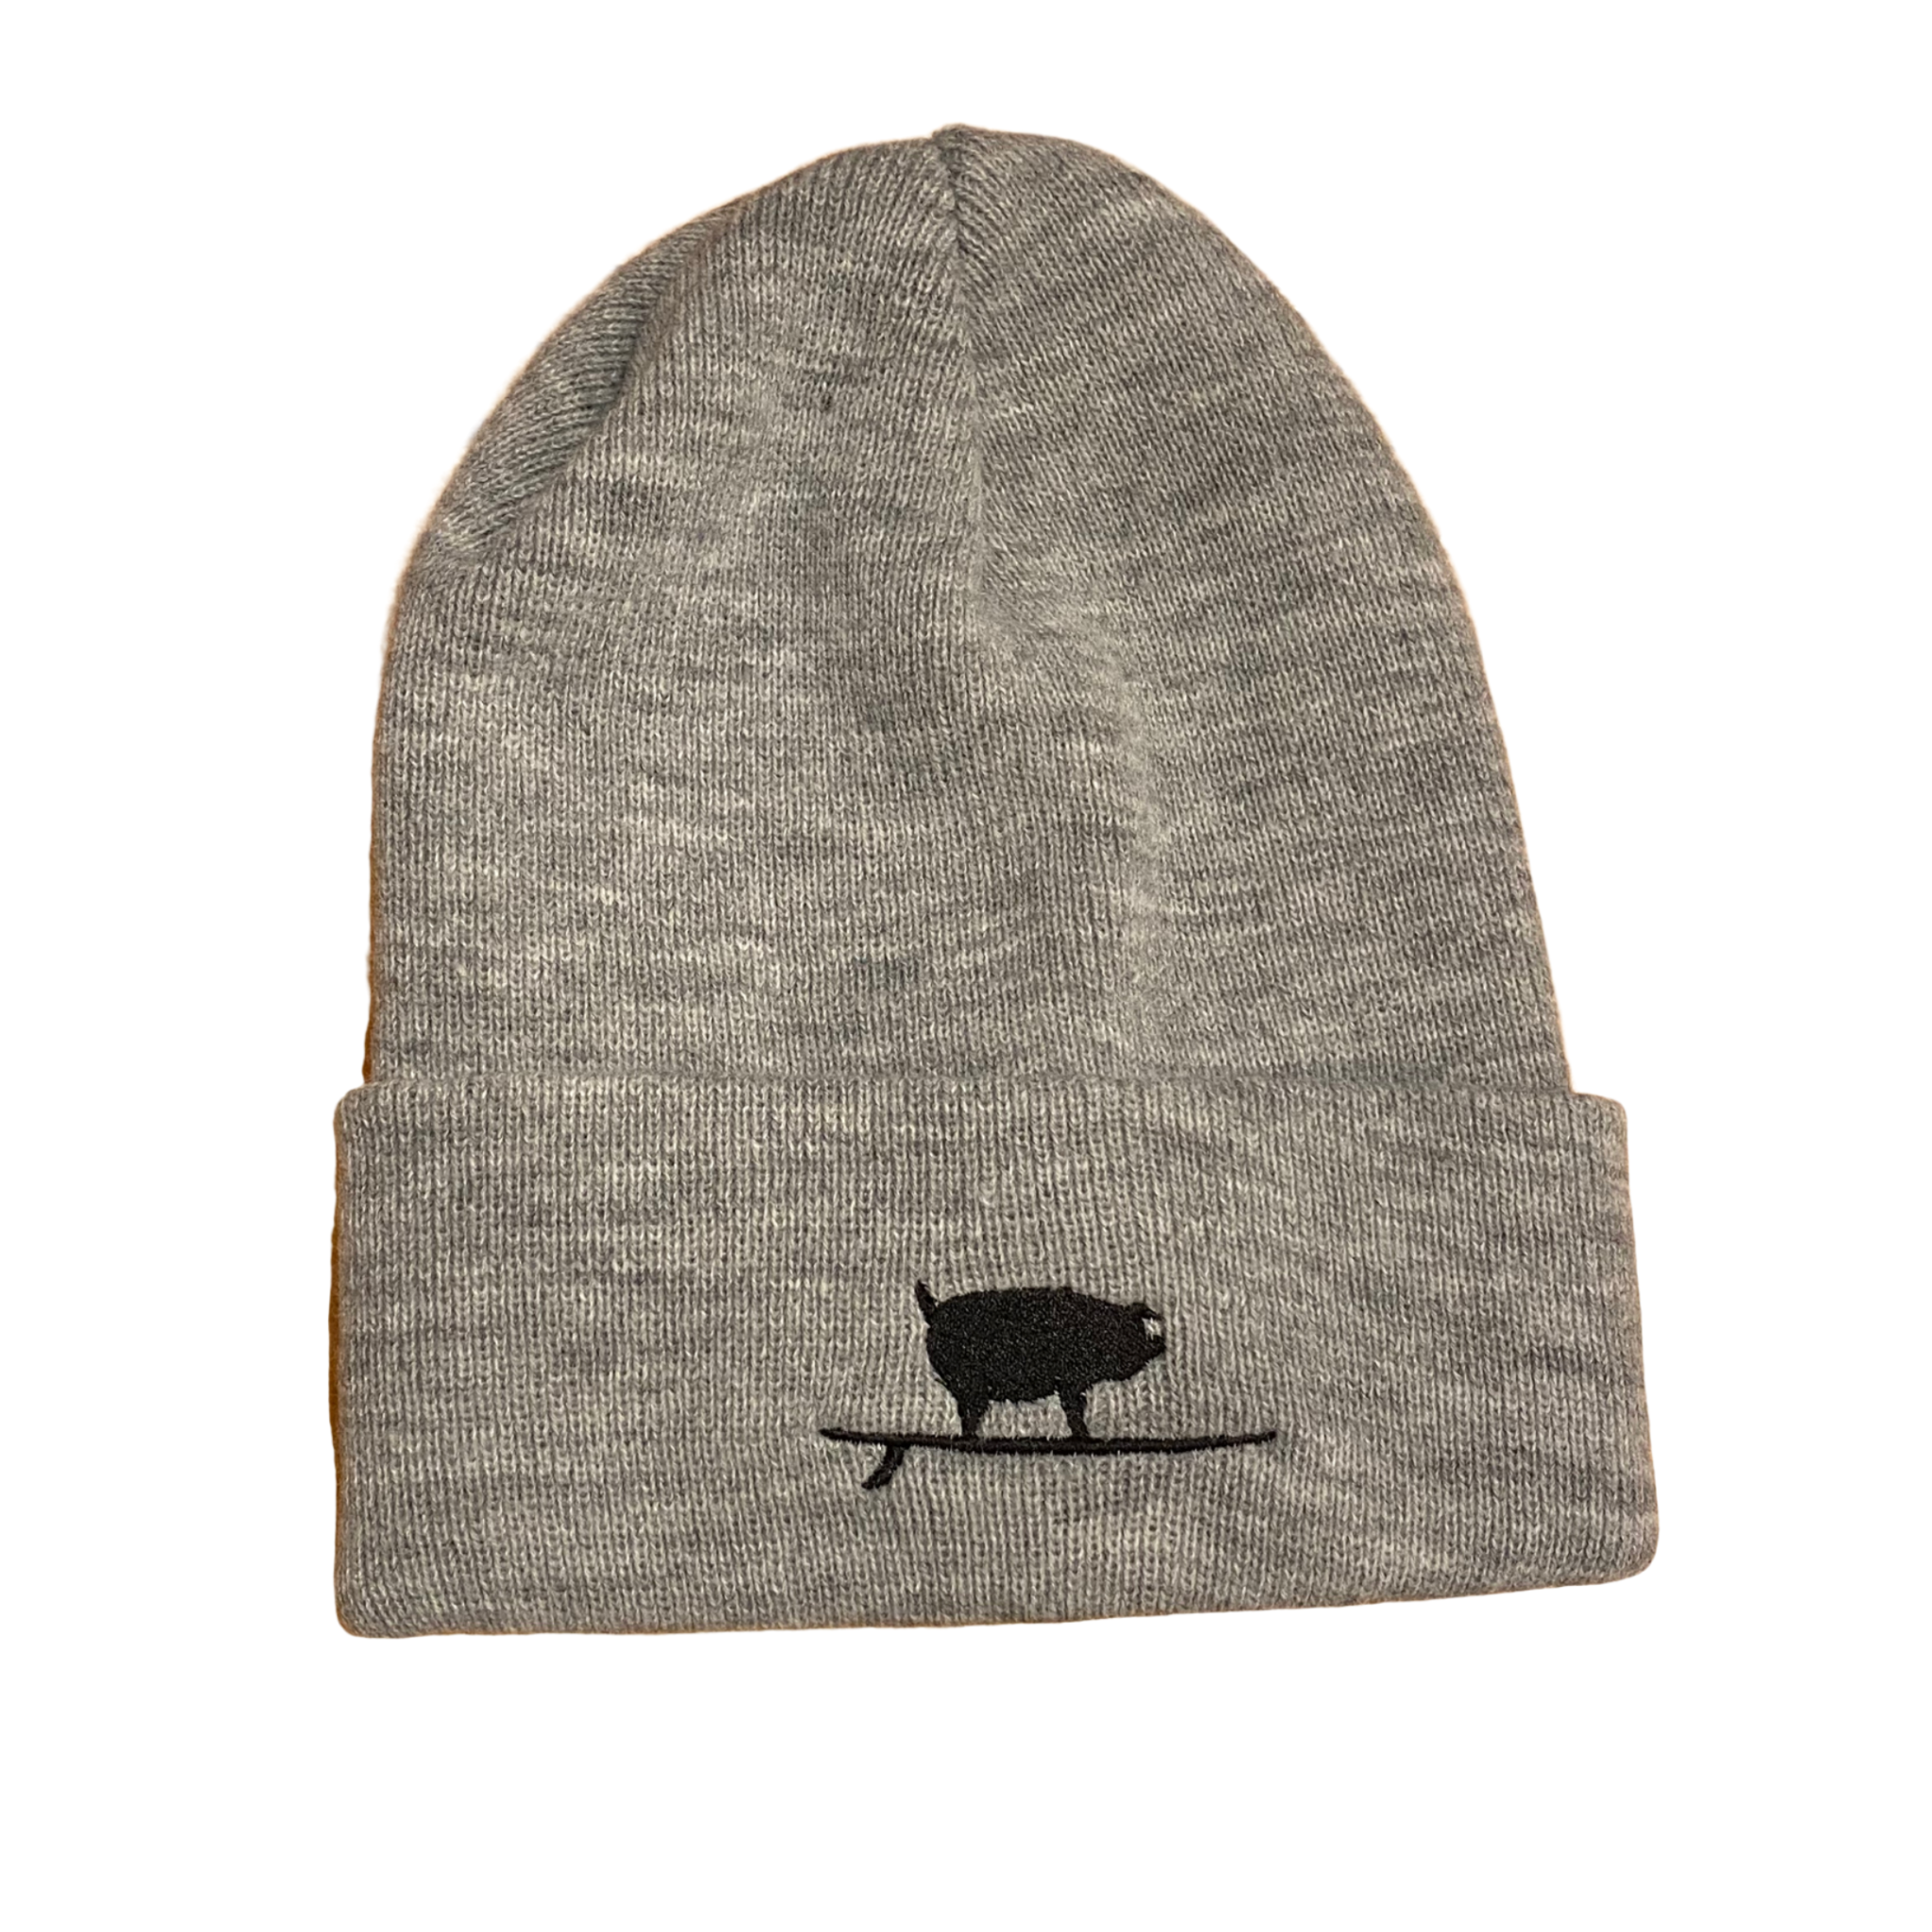 S.L. Revival Co. Surfing Pig Beanie, Heather